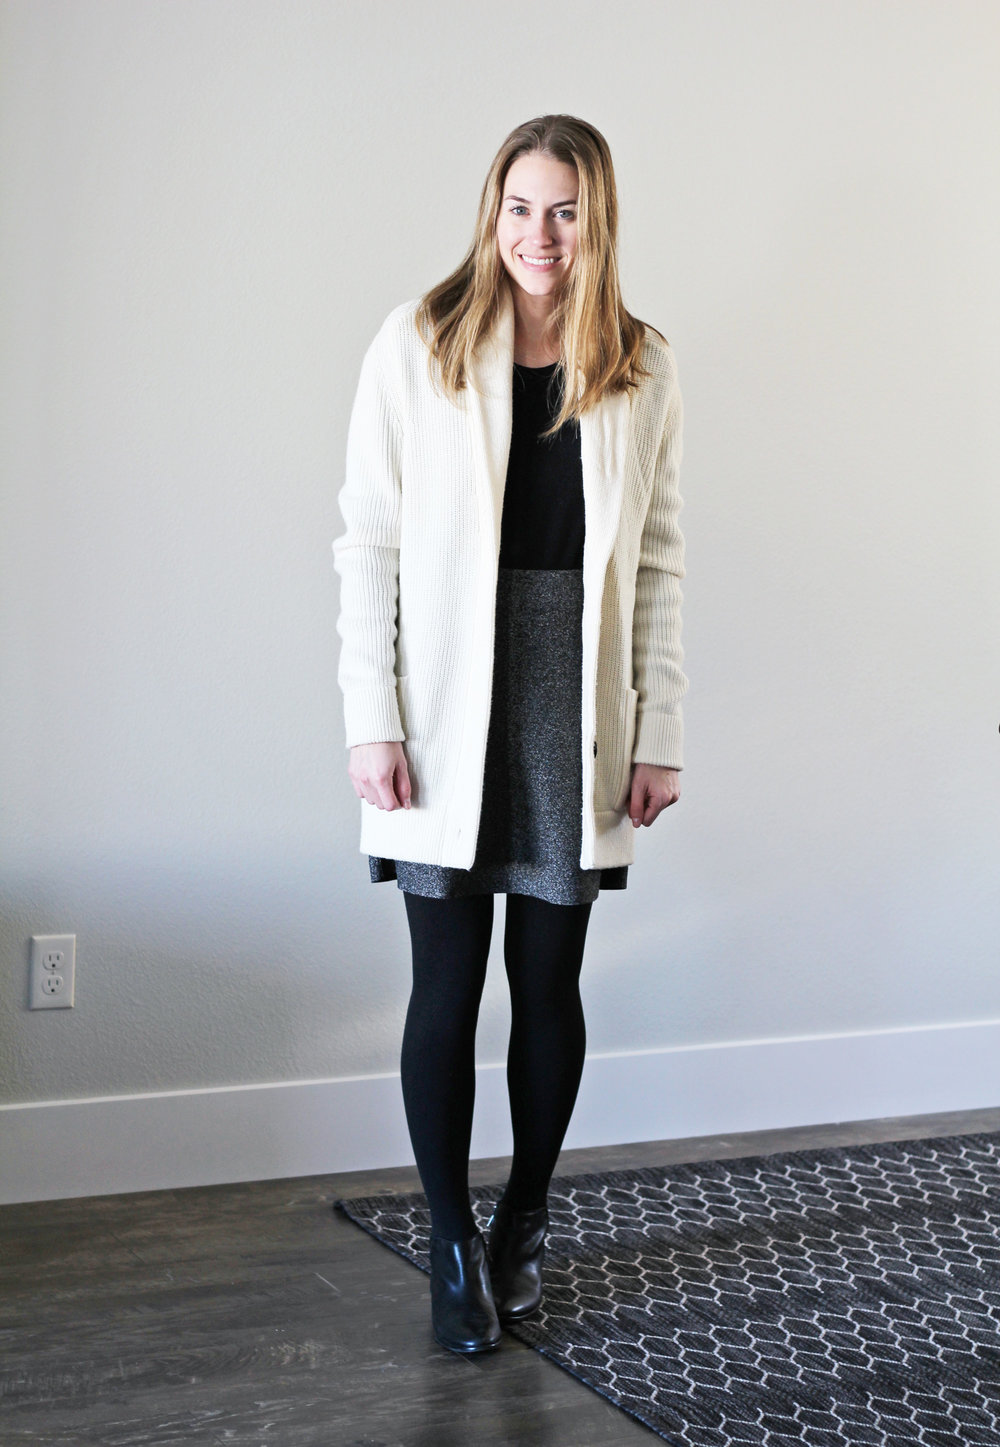 Winter 10x10: Ivory chunky knit cardigan, black sweater, speckled skirt, black ankle boots — Cotton Cashmere Cat Hair